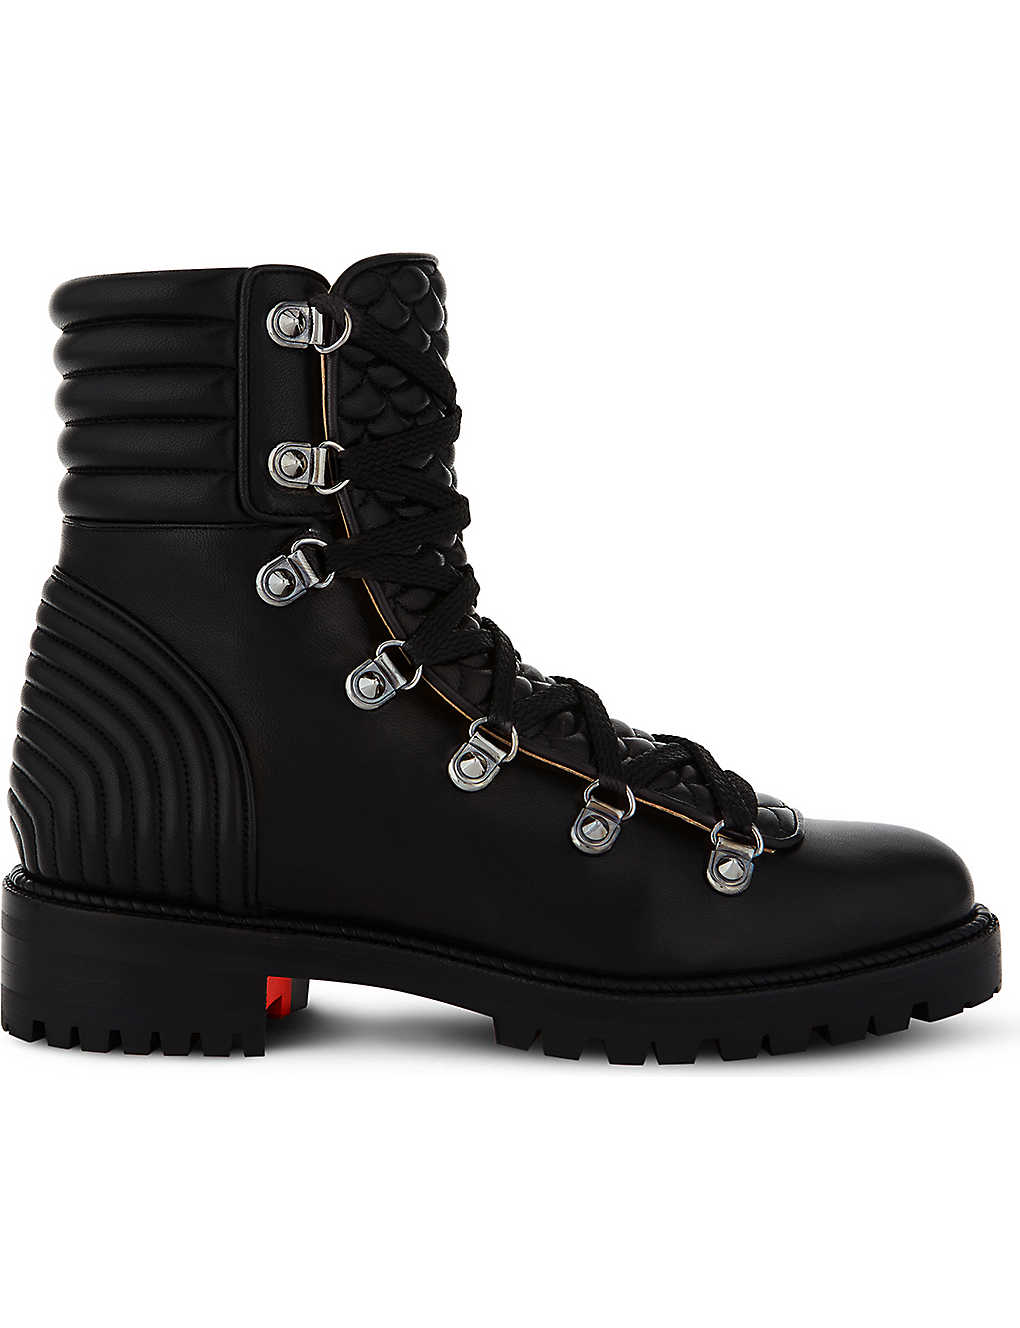 finest selection c151d e82af CHRISTIAN LOUBOUTIN - Mad Boot flat nappa shiny | Selfridges.com